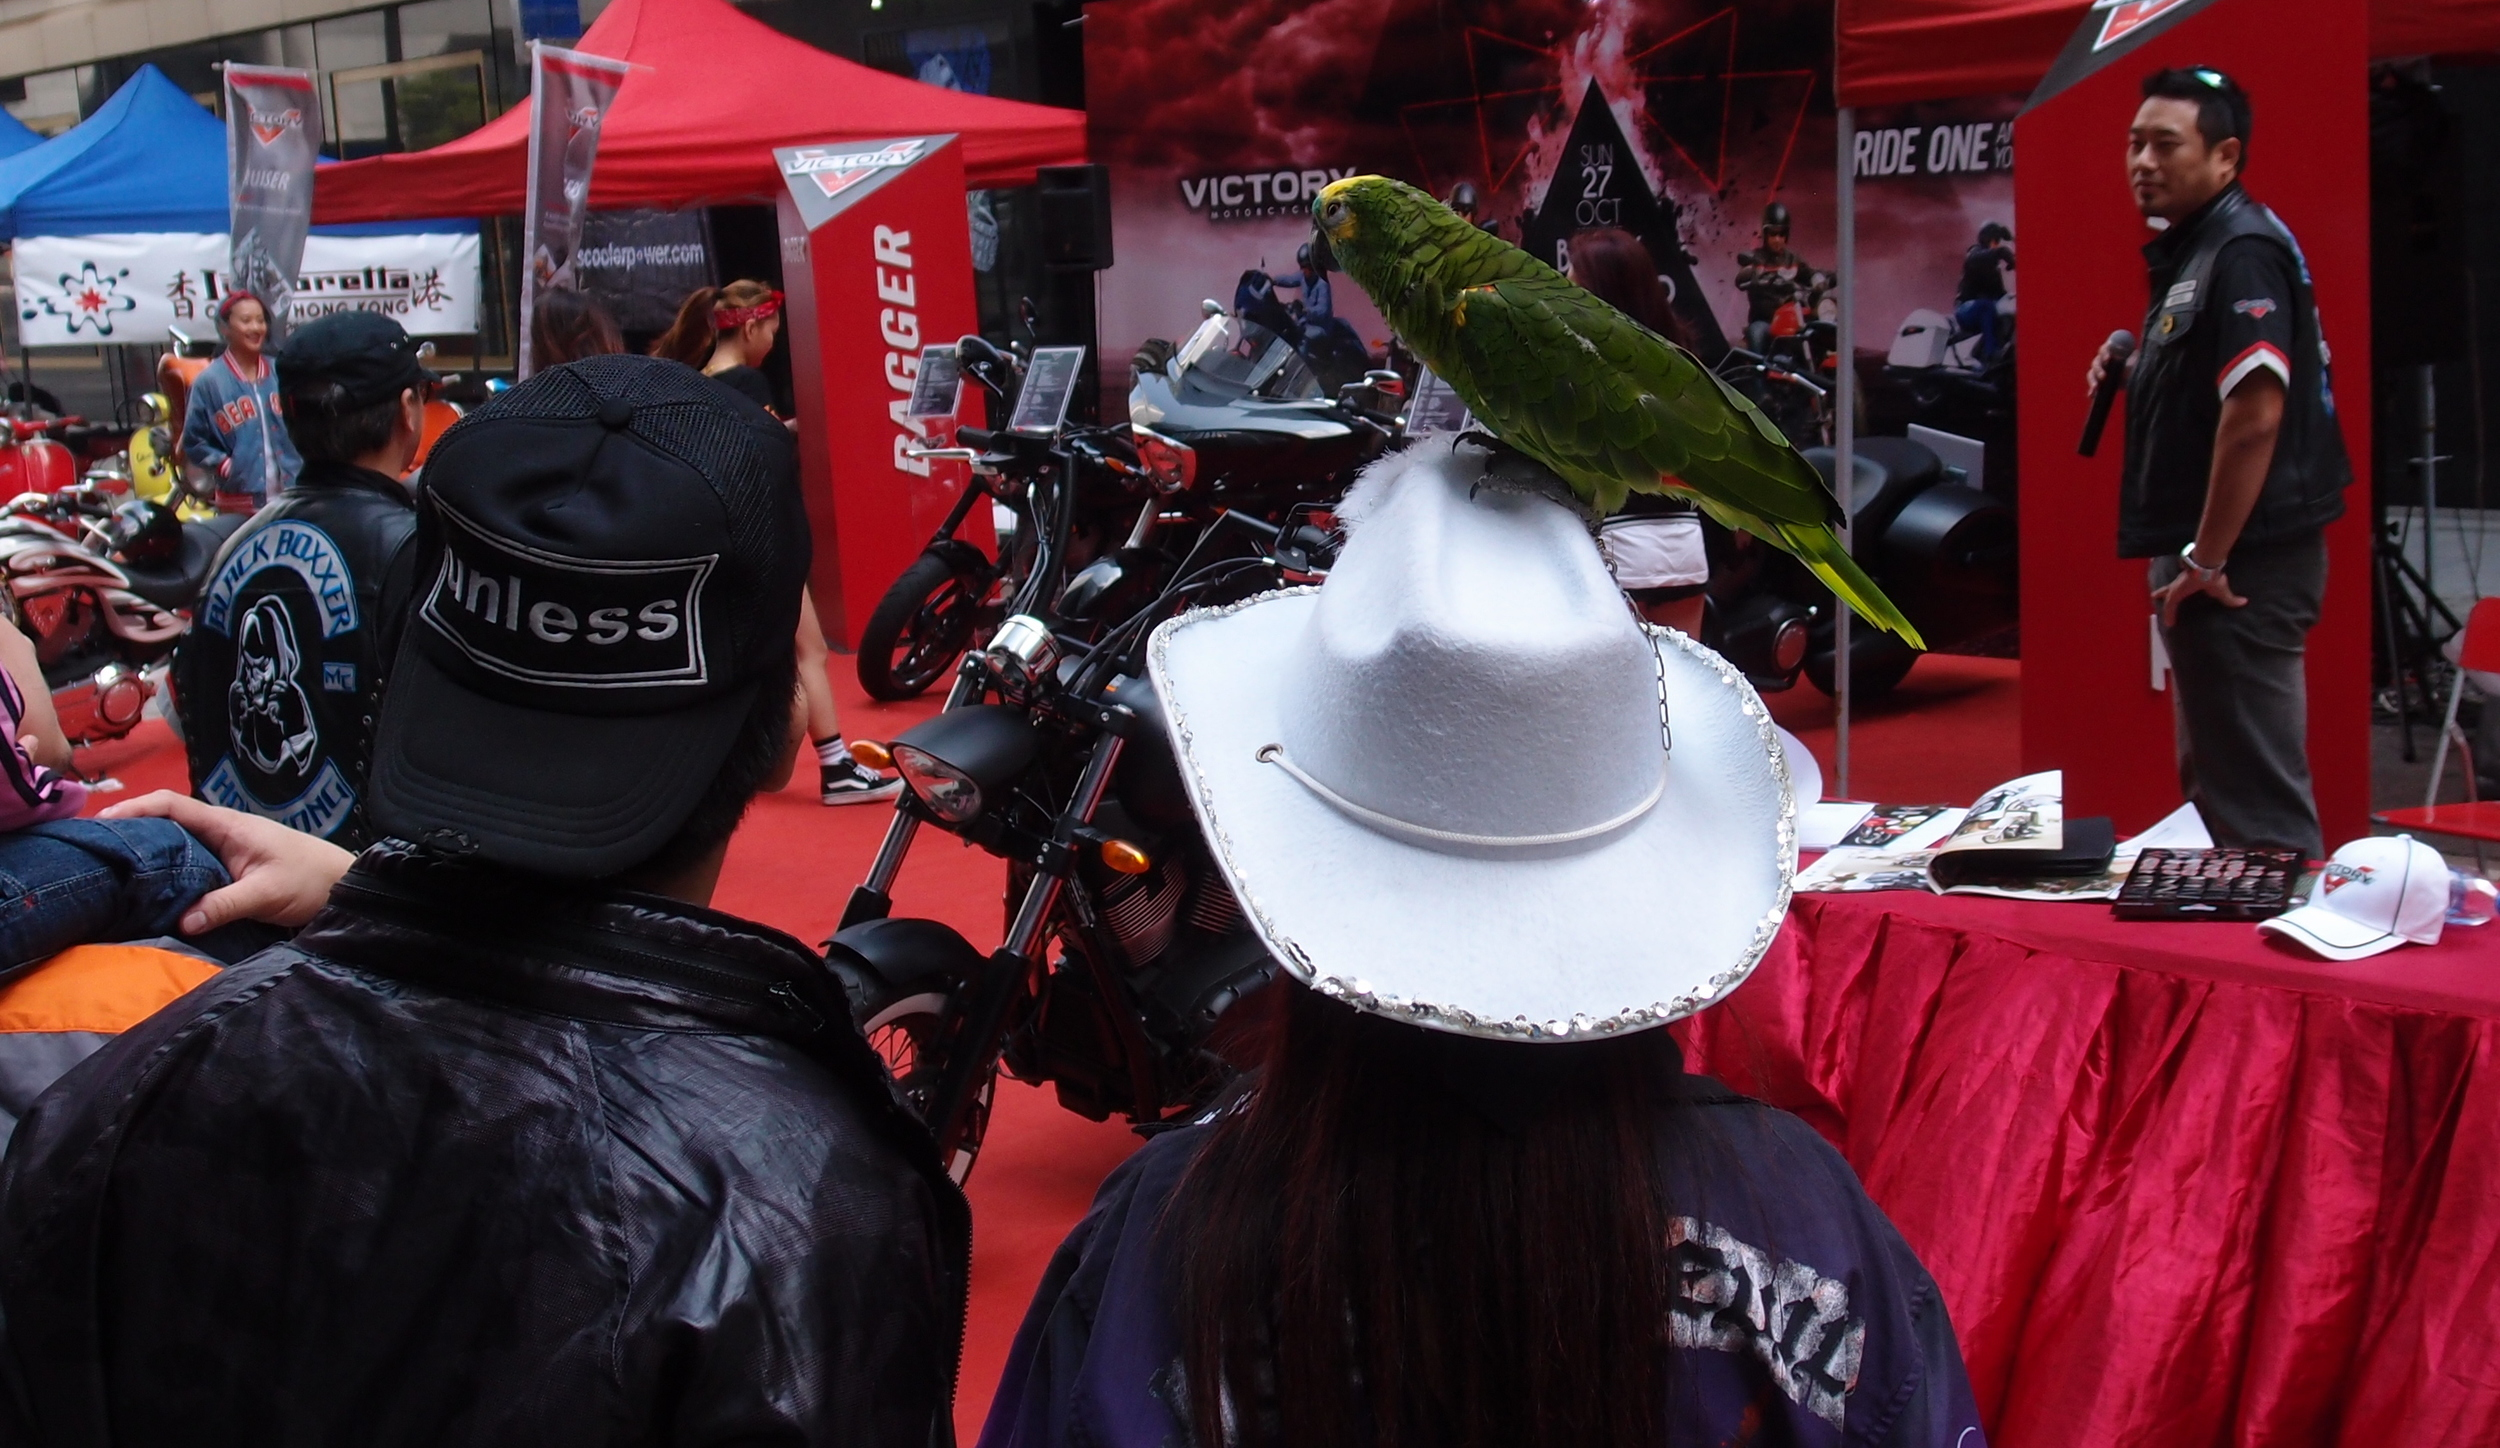 Yes, this lady really was walking around with a parrot on her head.